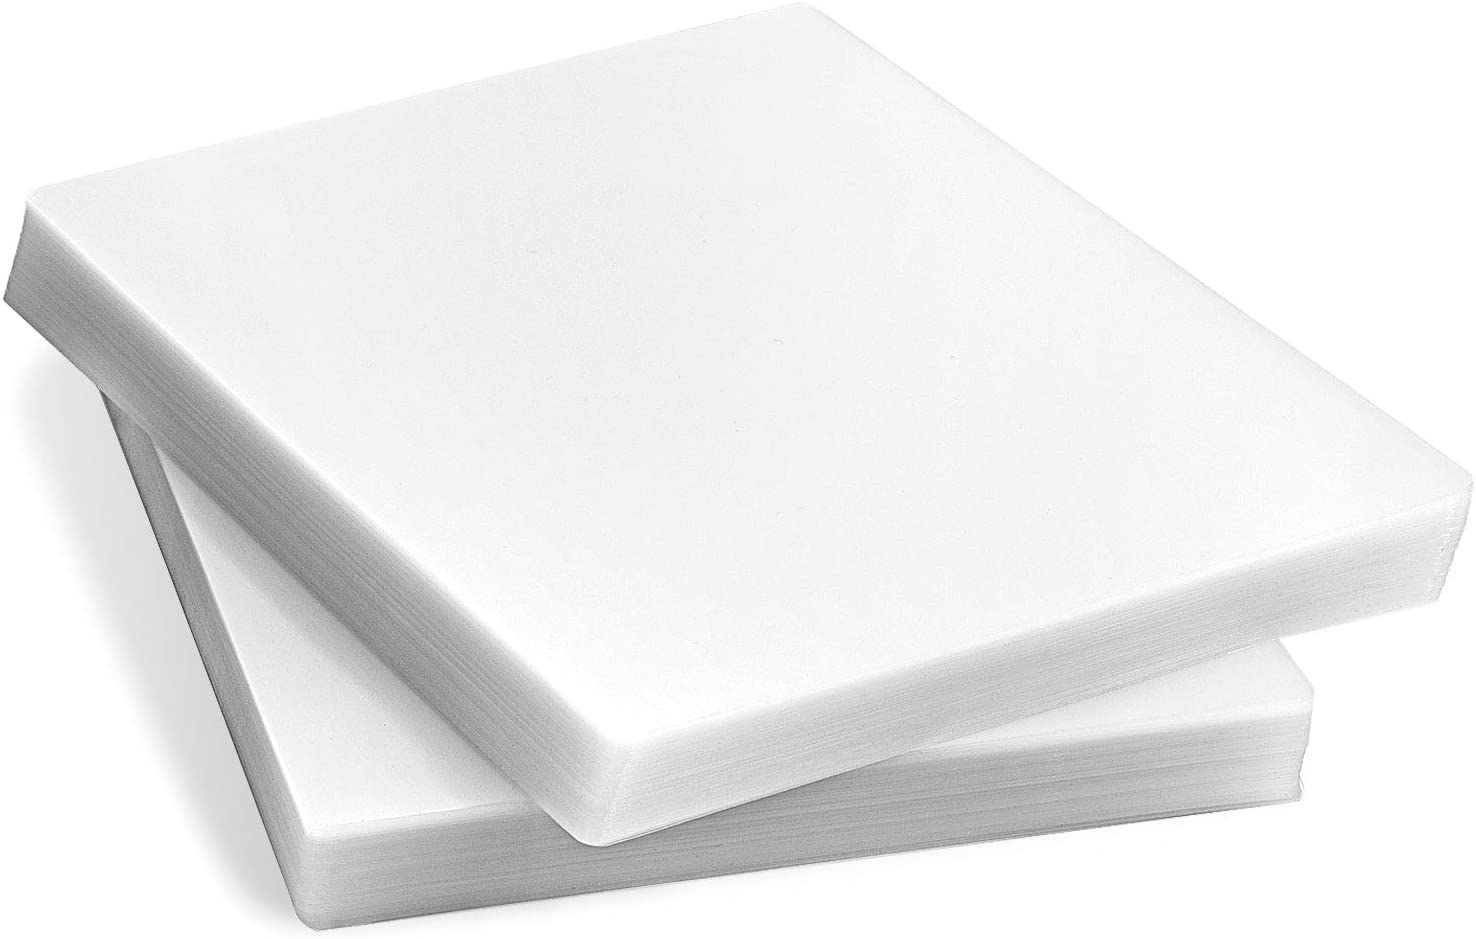 Ktrio 200 Pack Laminating Sheets 8.5 x 11 Inches, Laminating Pouches 5 Mil Clear Thermal Laminating Pouches Lamination Sheet Paper for Laminator, Round Corner Letter Size